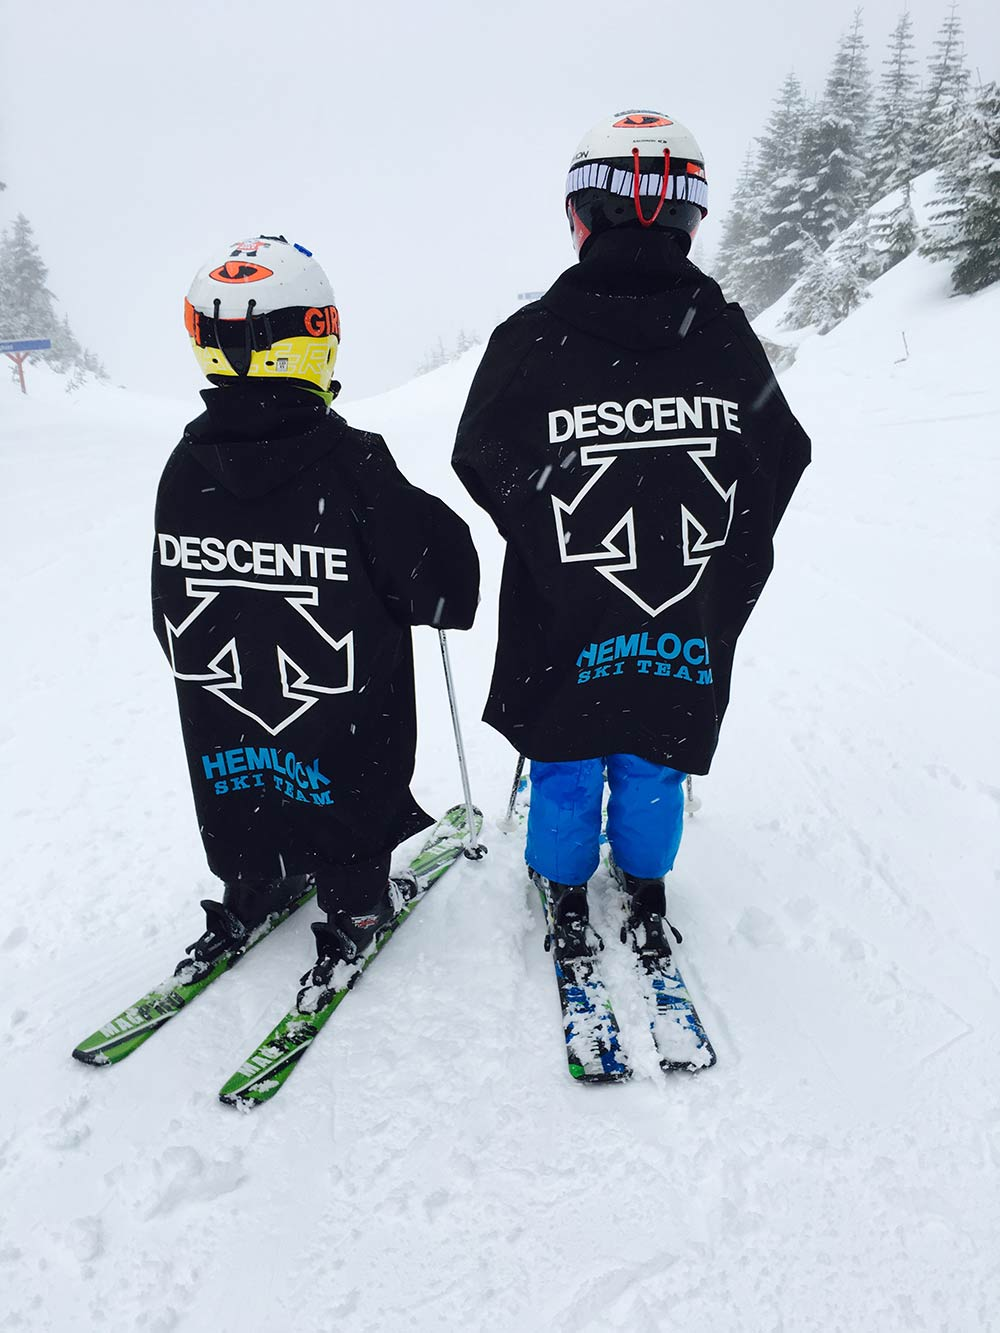 Two young ski club members on skis at Sasquatch Mountain